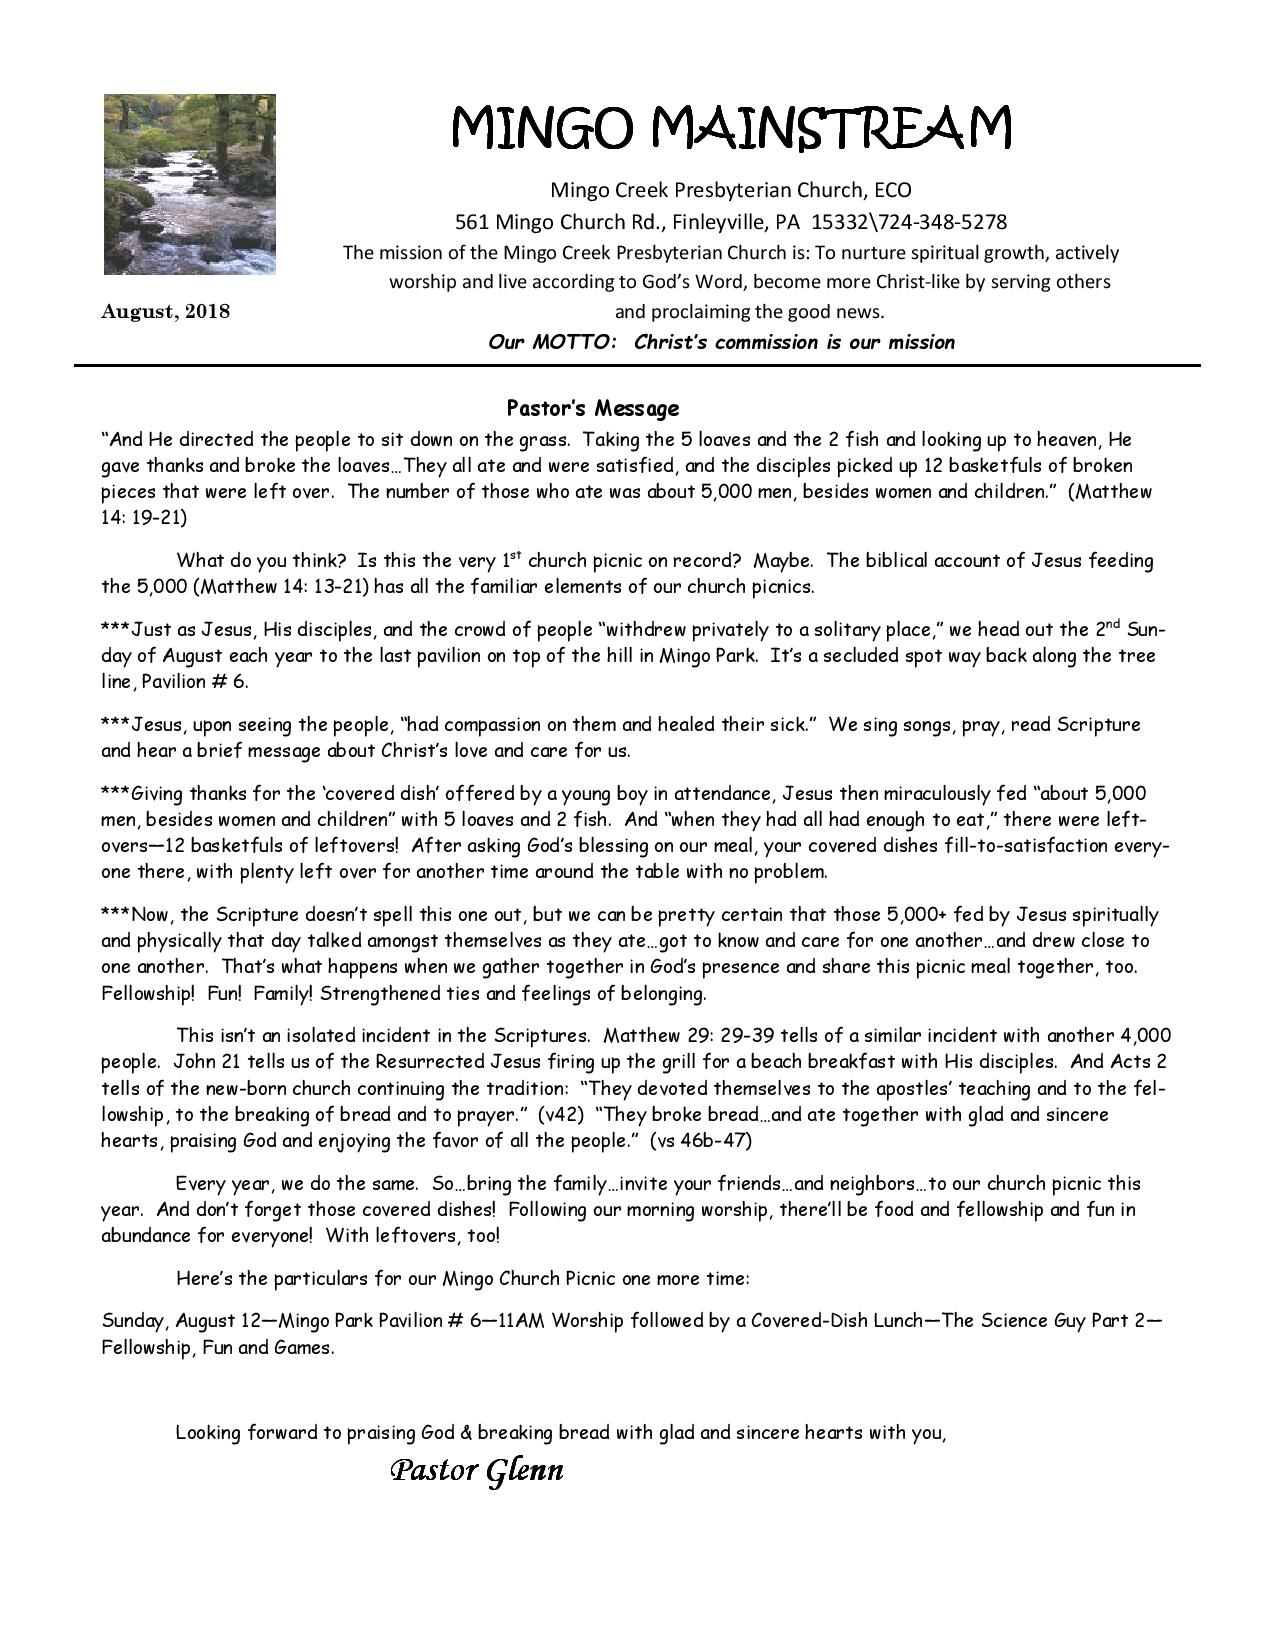 AUGUST NEWSLETTER-page-001.jpg